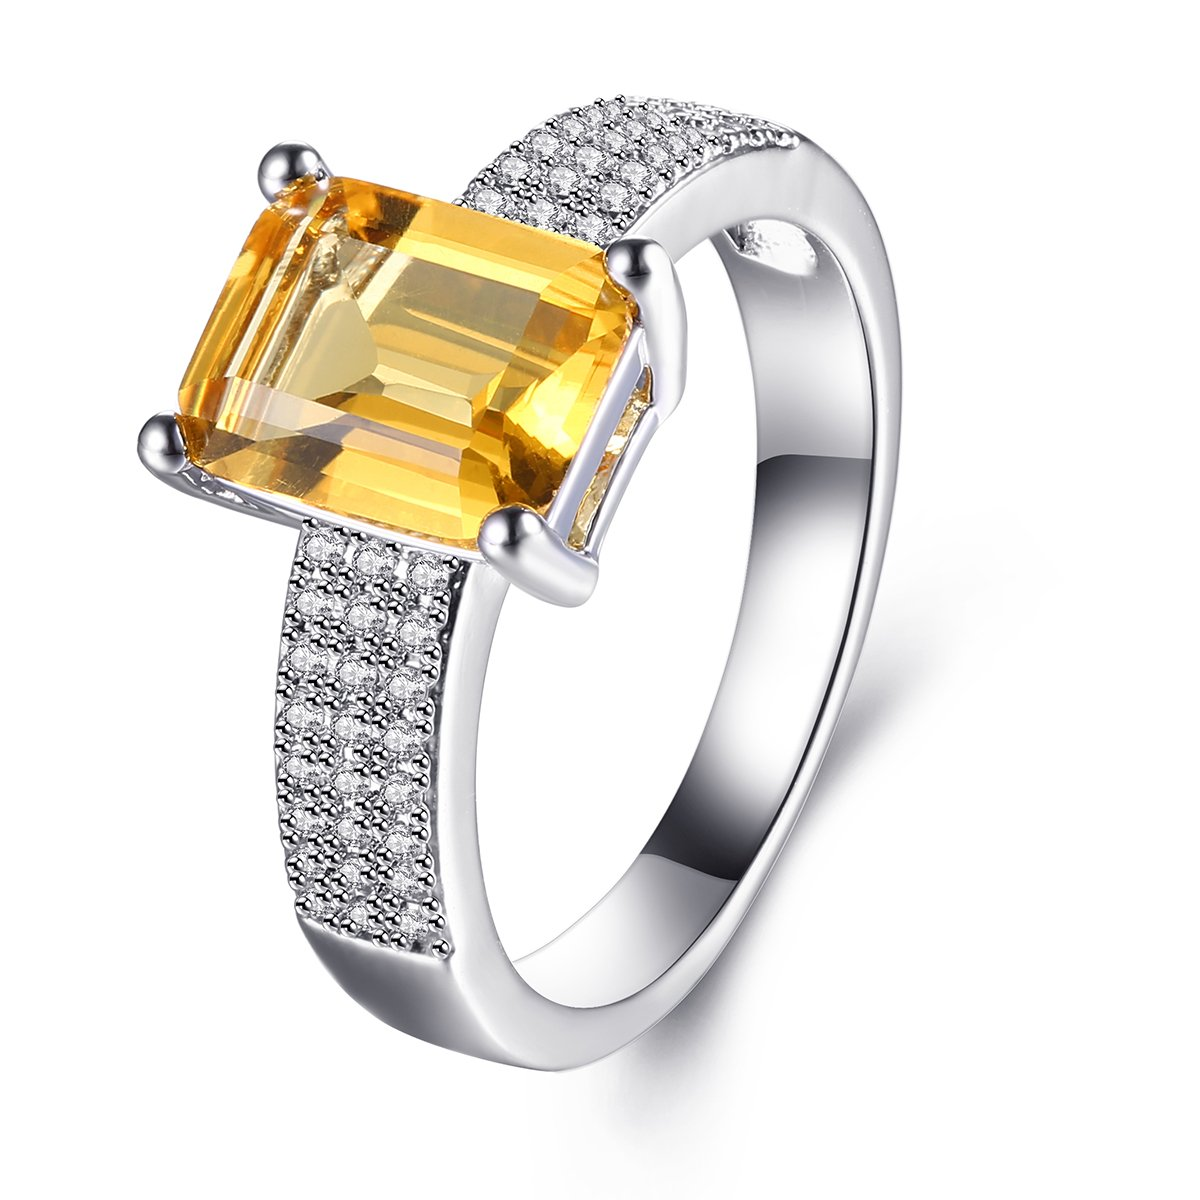 Women Rings White AAA Cubic Zirconia Rhodium Plated Ring Charming ElegantTrendy Party Jewelry Size 5 6 7 8 9 Jiangyue JWZ2696